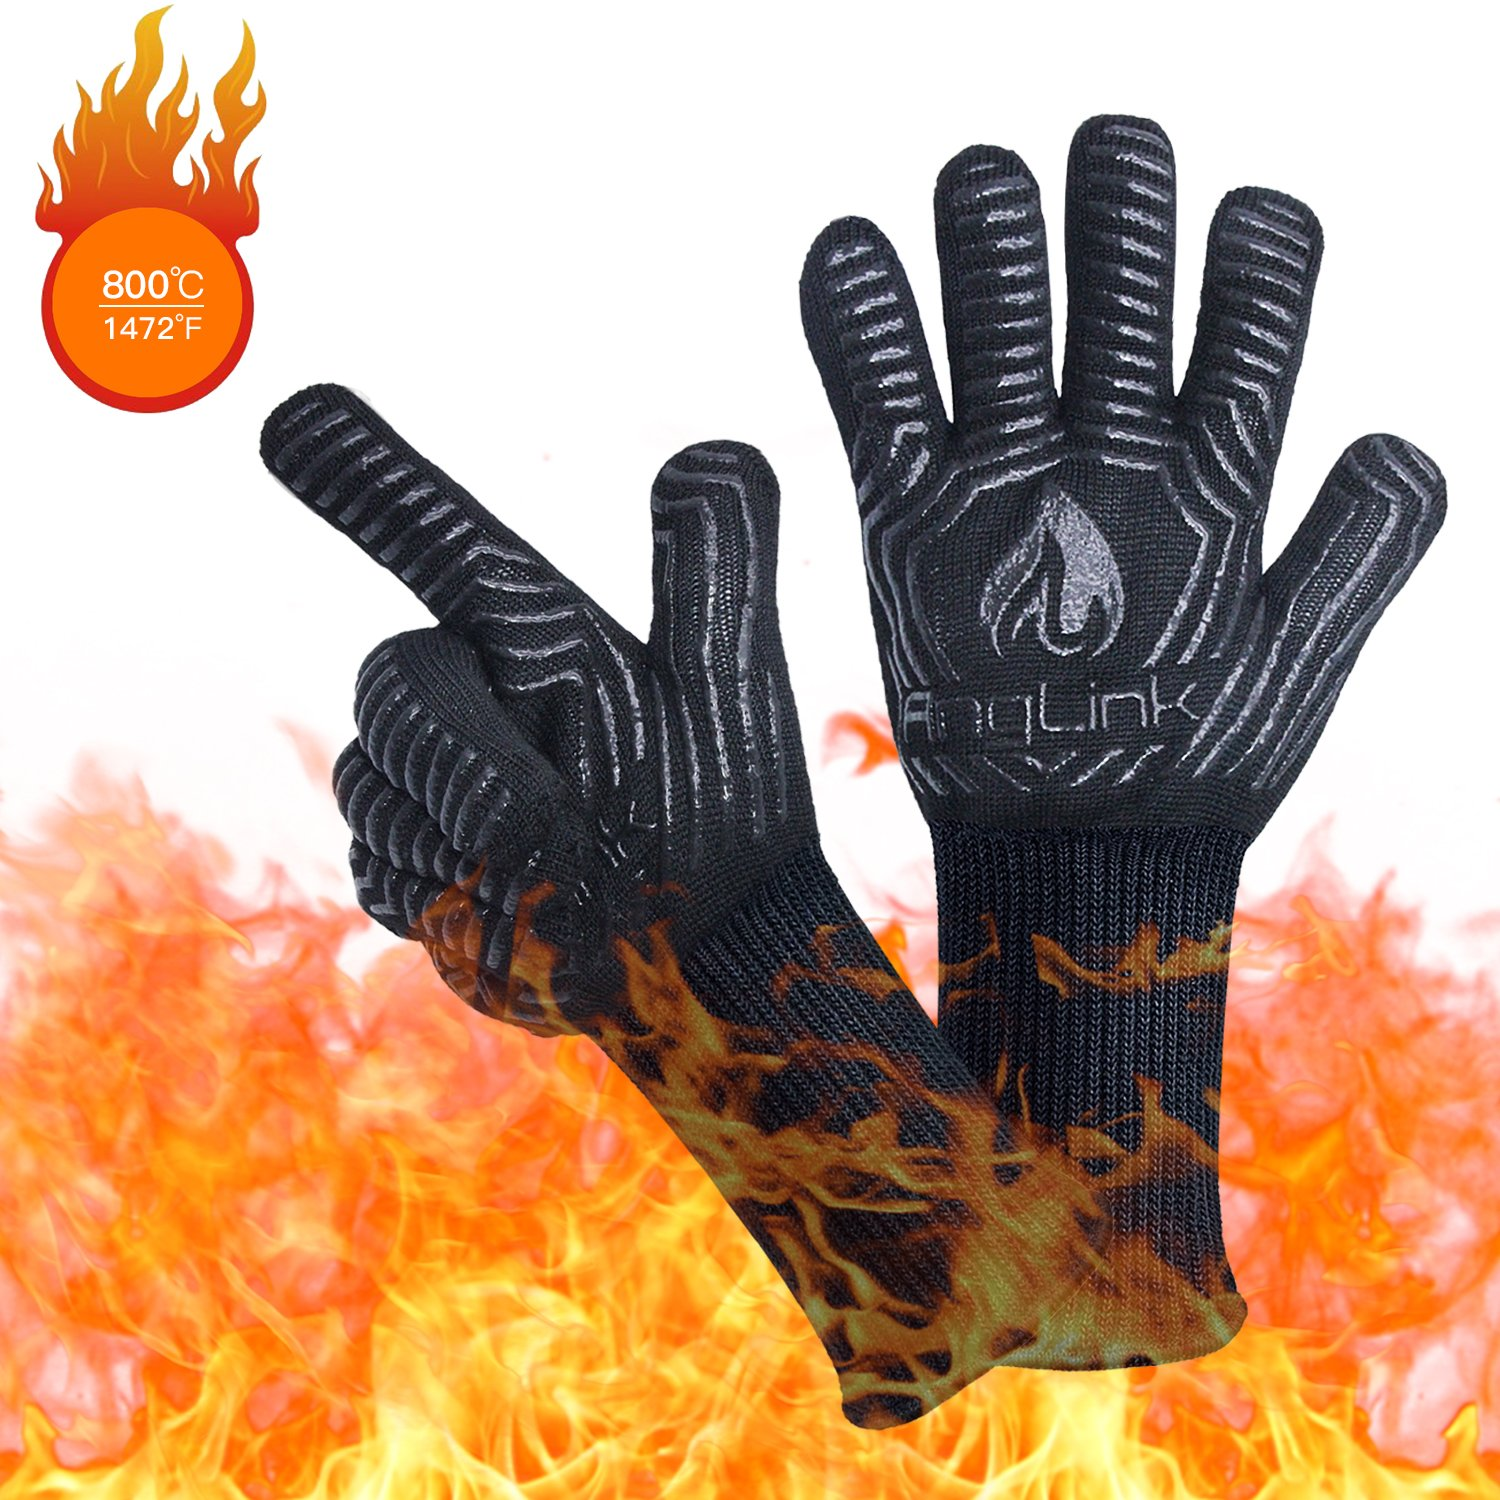 AngLink BBQ Grill Gloves, 1472F Extreme Heat Resistant Grilling Gloves for Cooking, Baking and for Smoker, Silicone Insulated Cooking Oven Mitts, Long Non-slip Potholder Gloves by Anglink